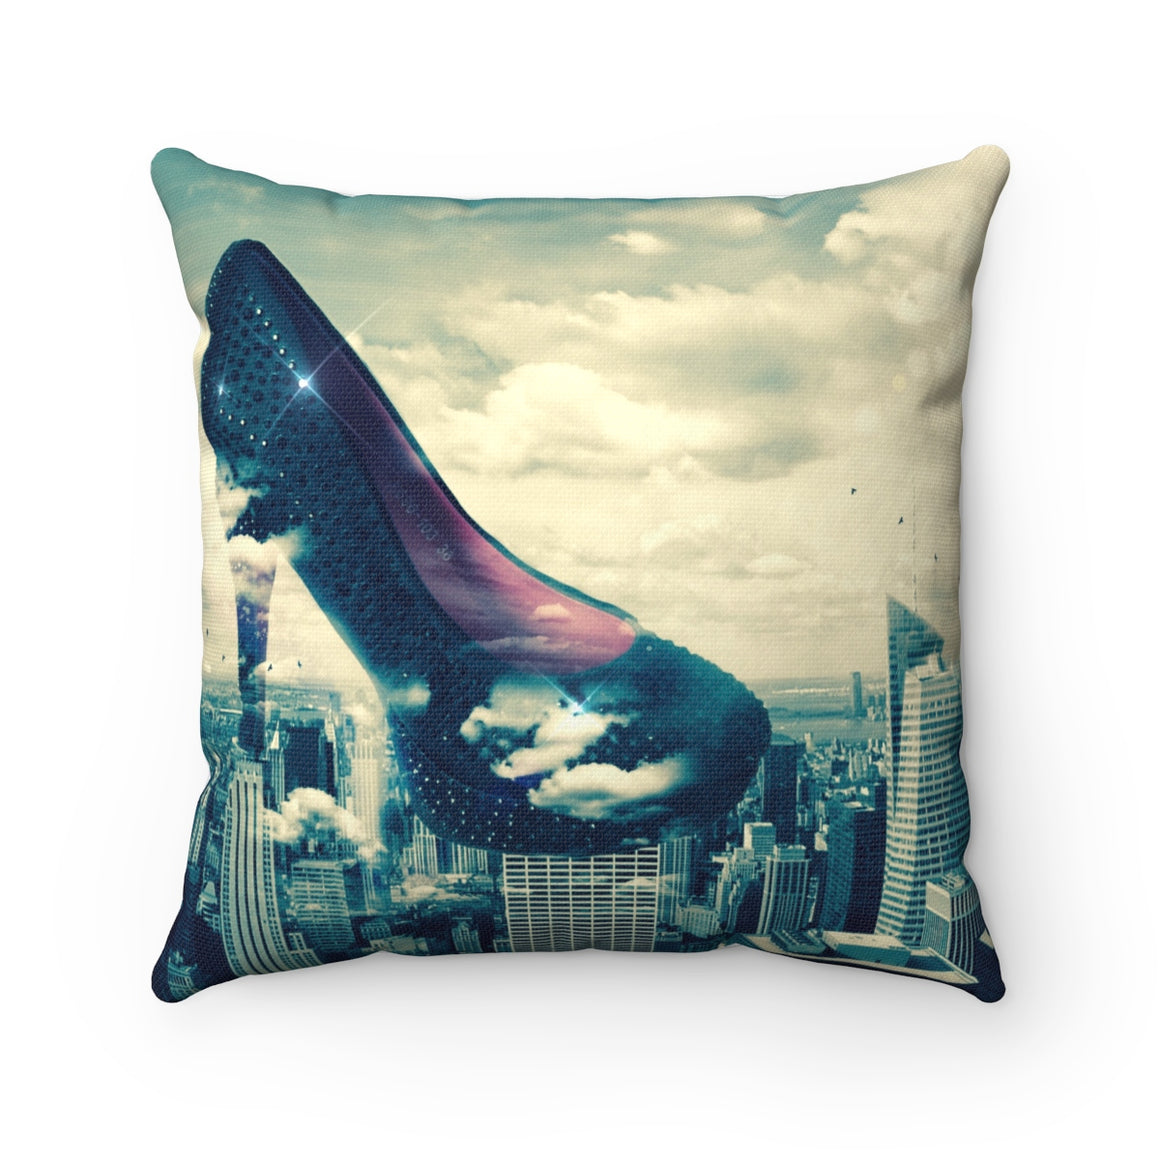 My Fabulous Style Beautiful Heels so High Square Throw Pillow-- Home Decor Fashion Throw Pillow